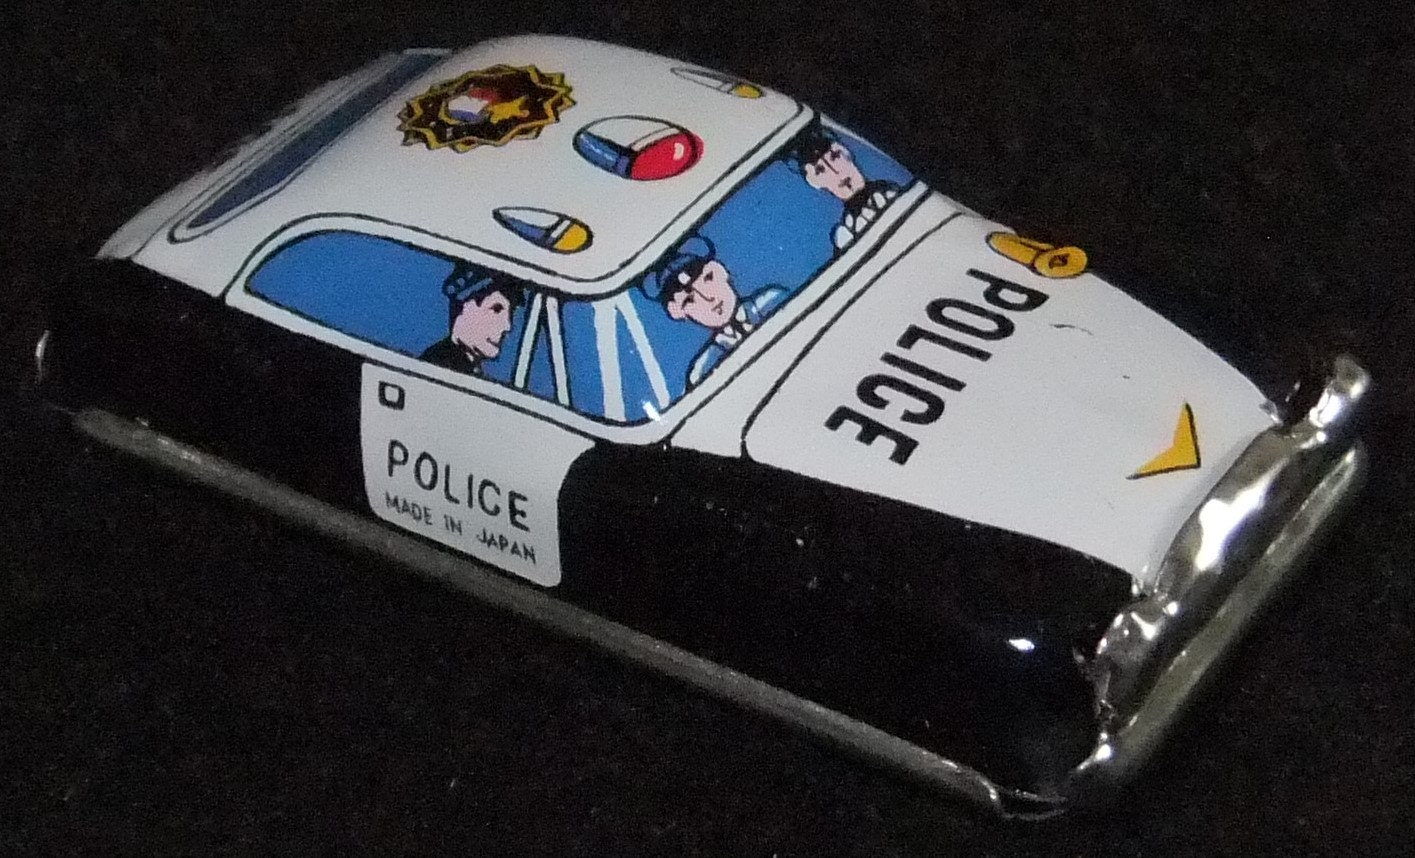 Police car tinplate toy car vintage c1960s by Lucky Toys made in Japan